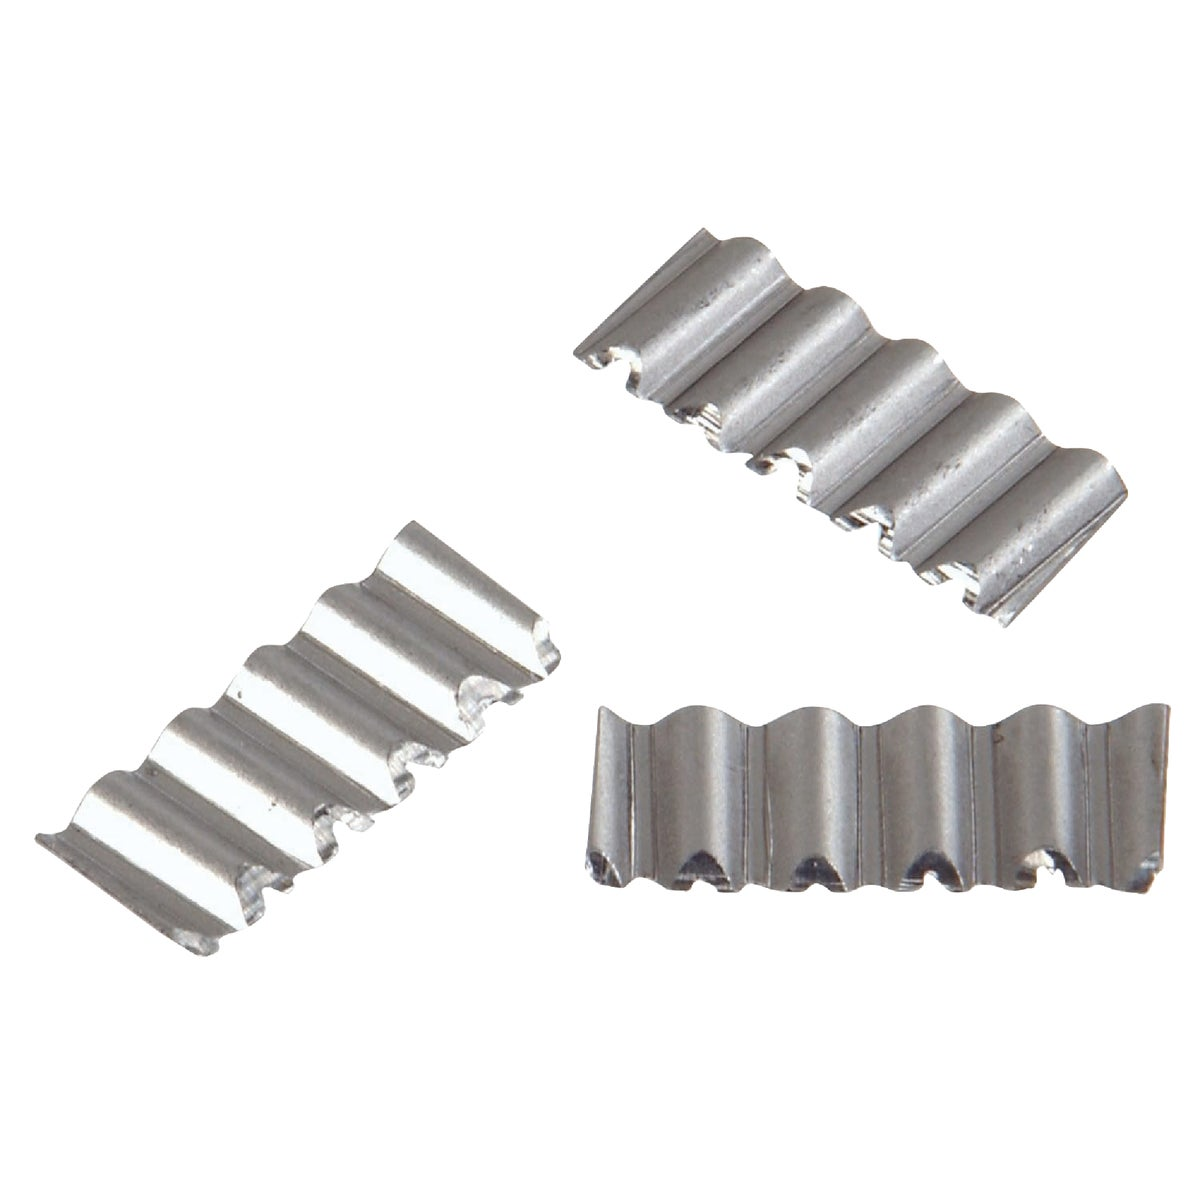 Item 723630, Corrugated bright steel joint fasteners; use only where appearance is not important, on backside.